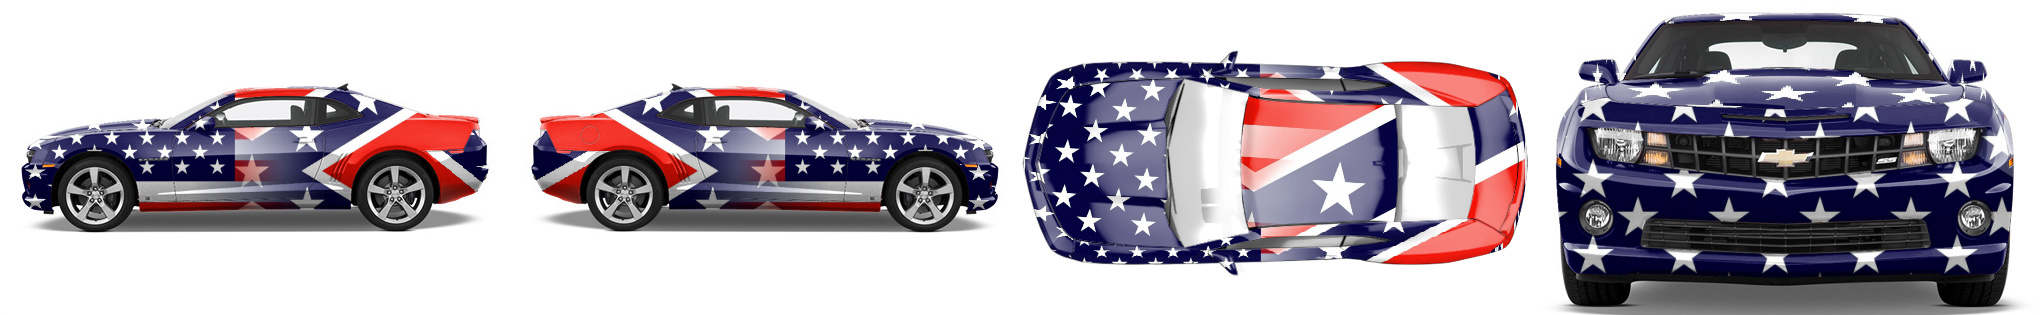 Muscle Car Wrap #52722